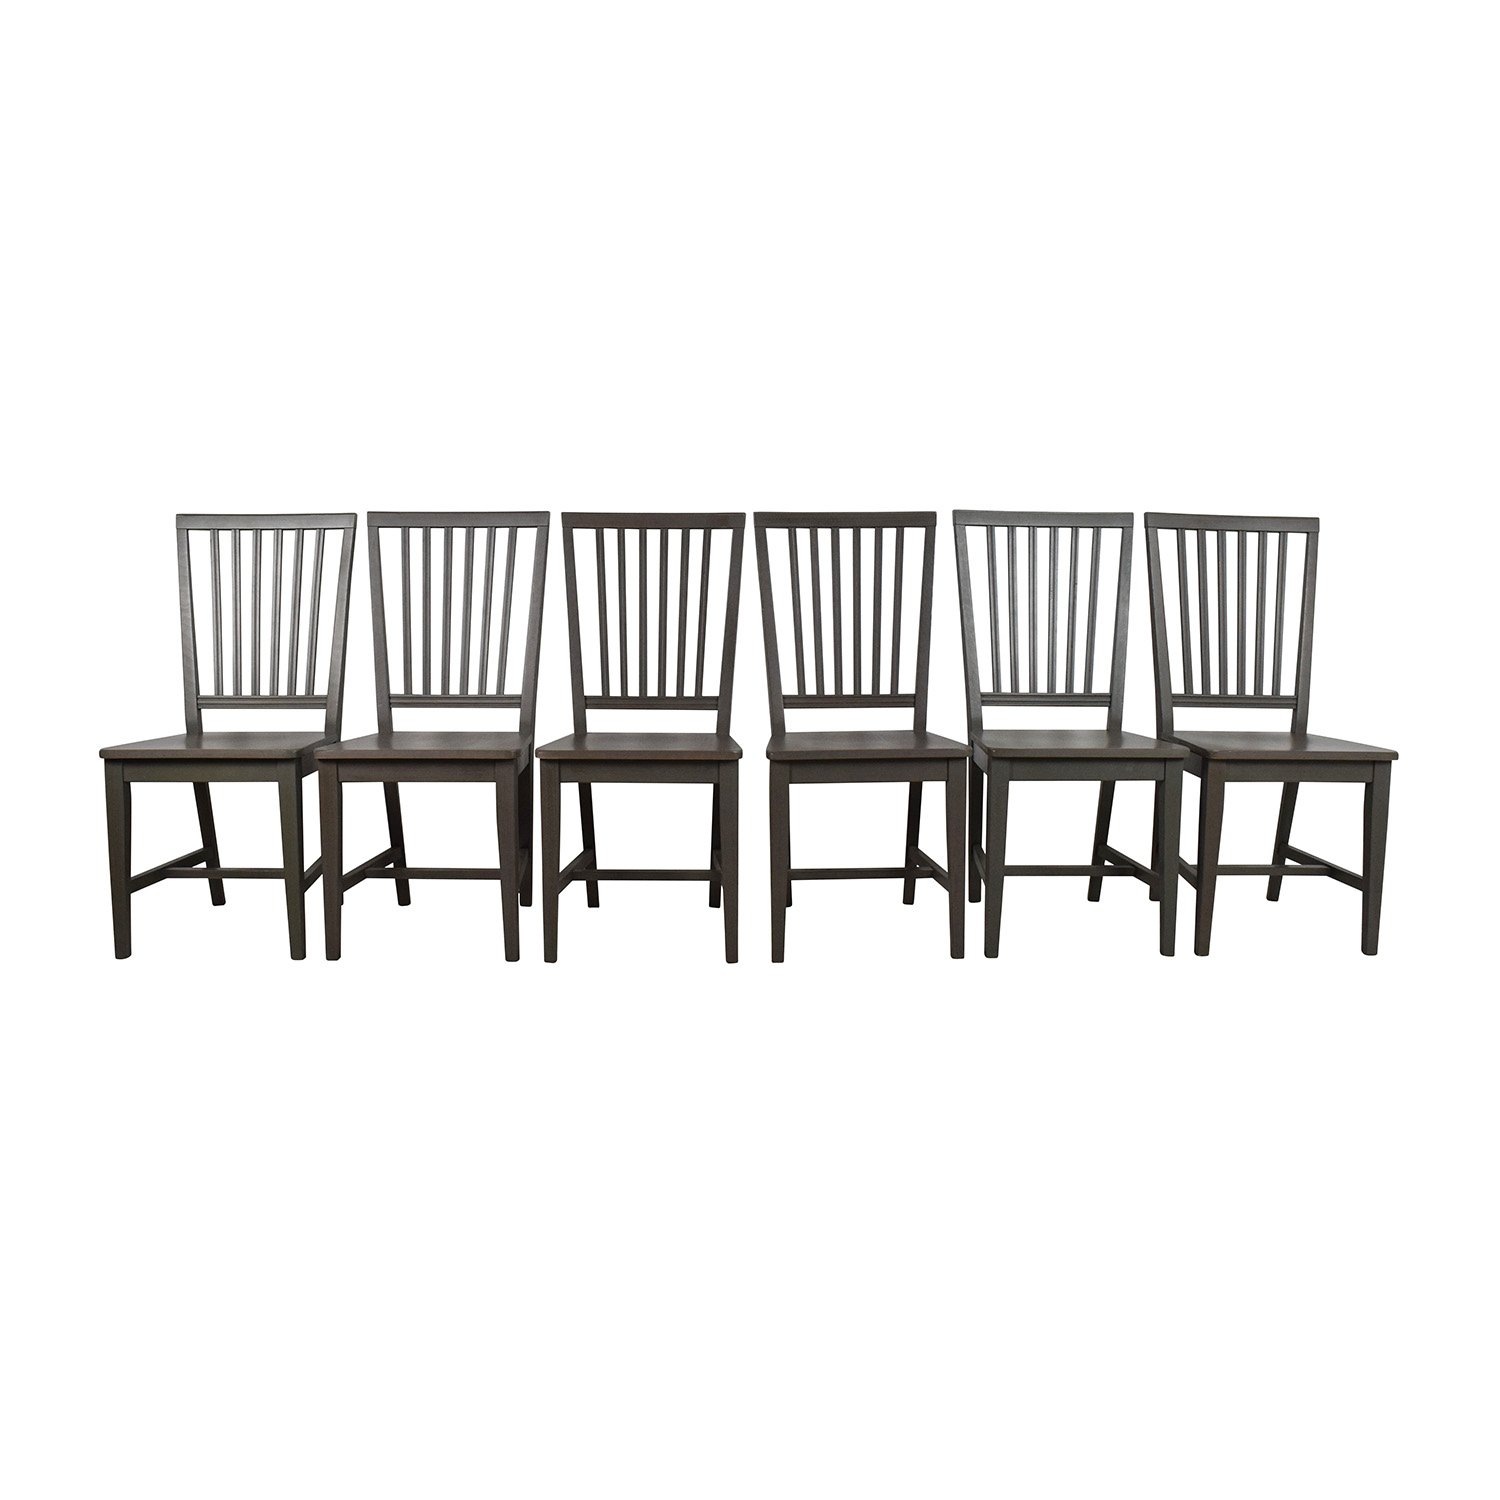 clara chair crate and barrel design competition 2018 bar set sale